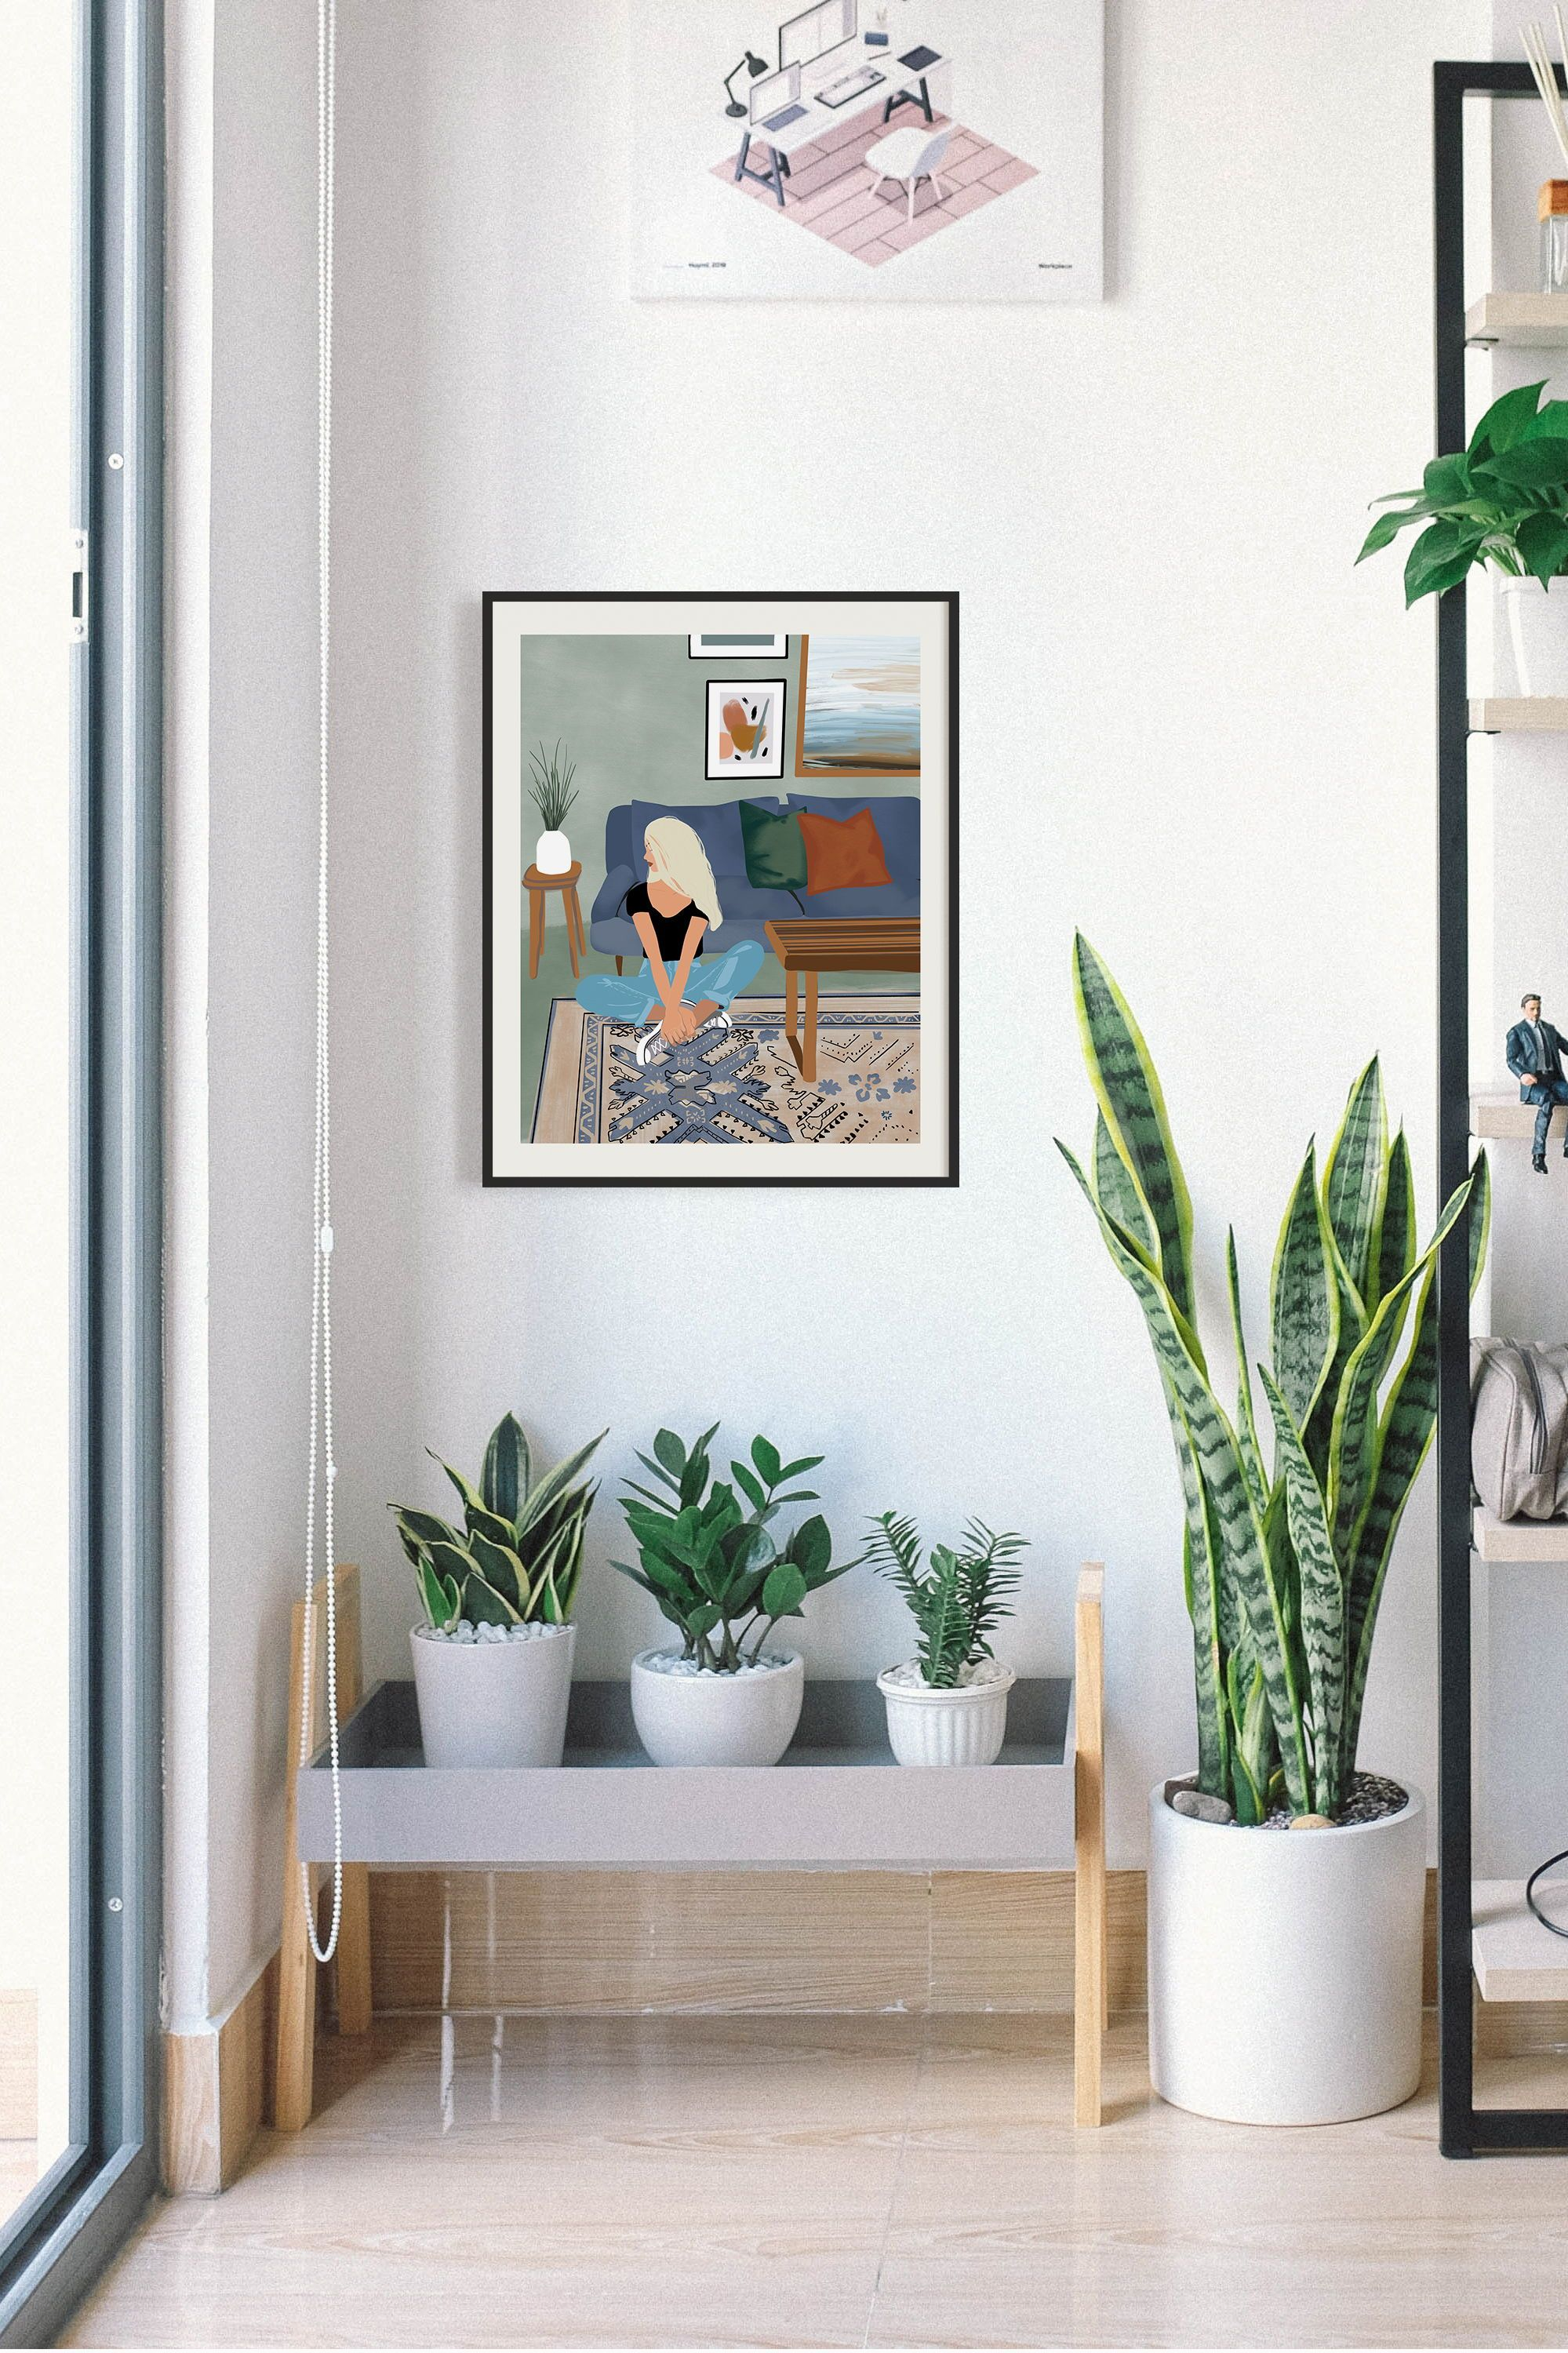 Modern Boho Wall Art Prints For Your Home Perfect For Strong Women Everywhere Give As A Gift Or Hang As Hom Illustration Wall Boho Wall Art Modern Wall Decor